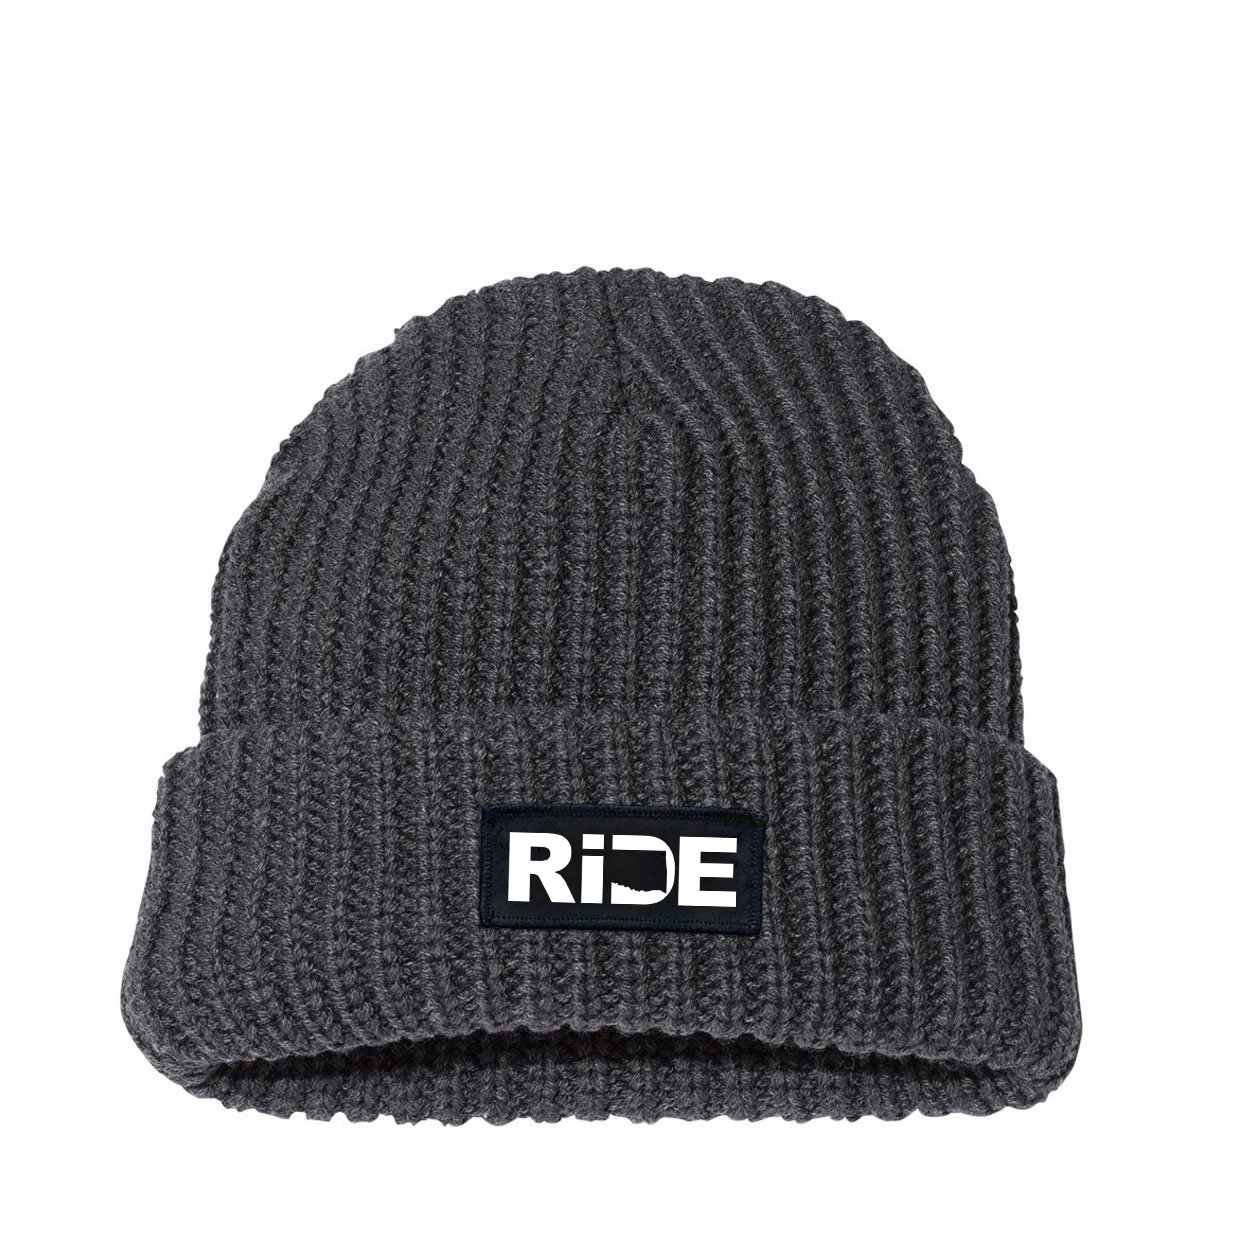 Ride Oklahoma Night Out Woven Patch Roll Up Jumbo Chunky Knit Beanie Charcoal (White Logo)